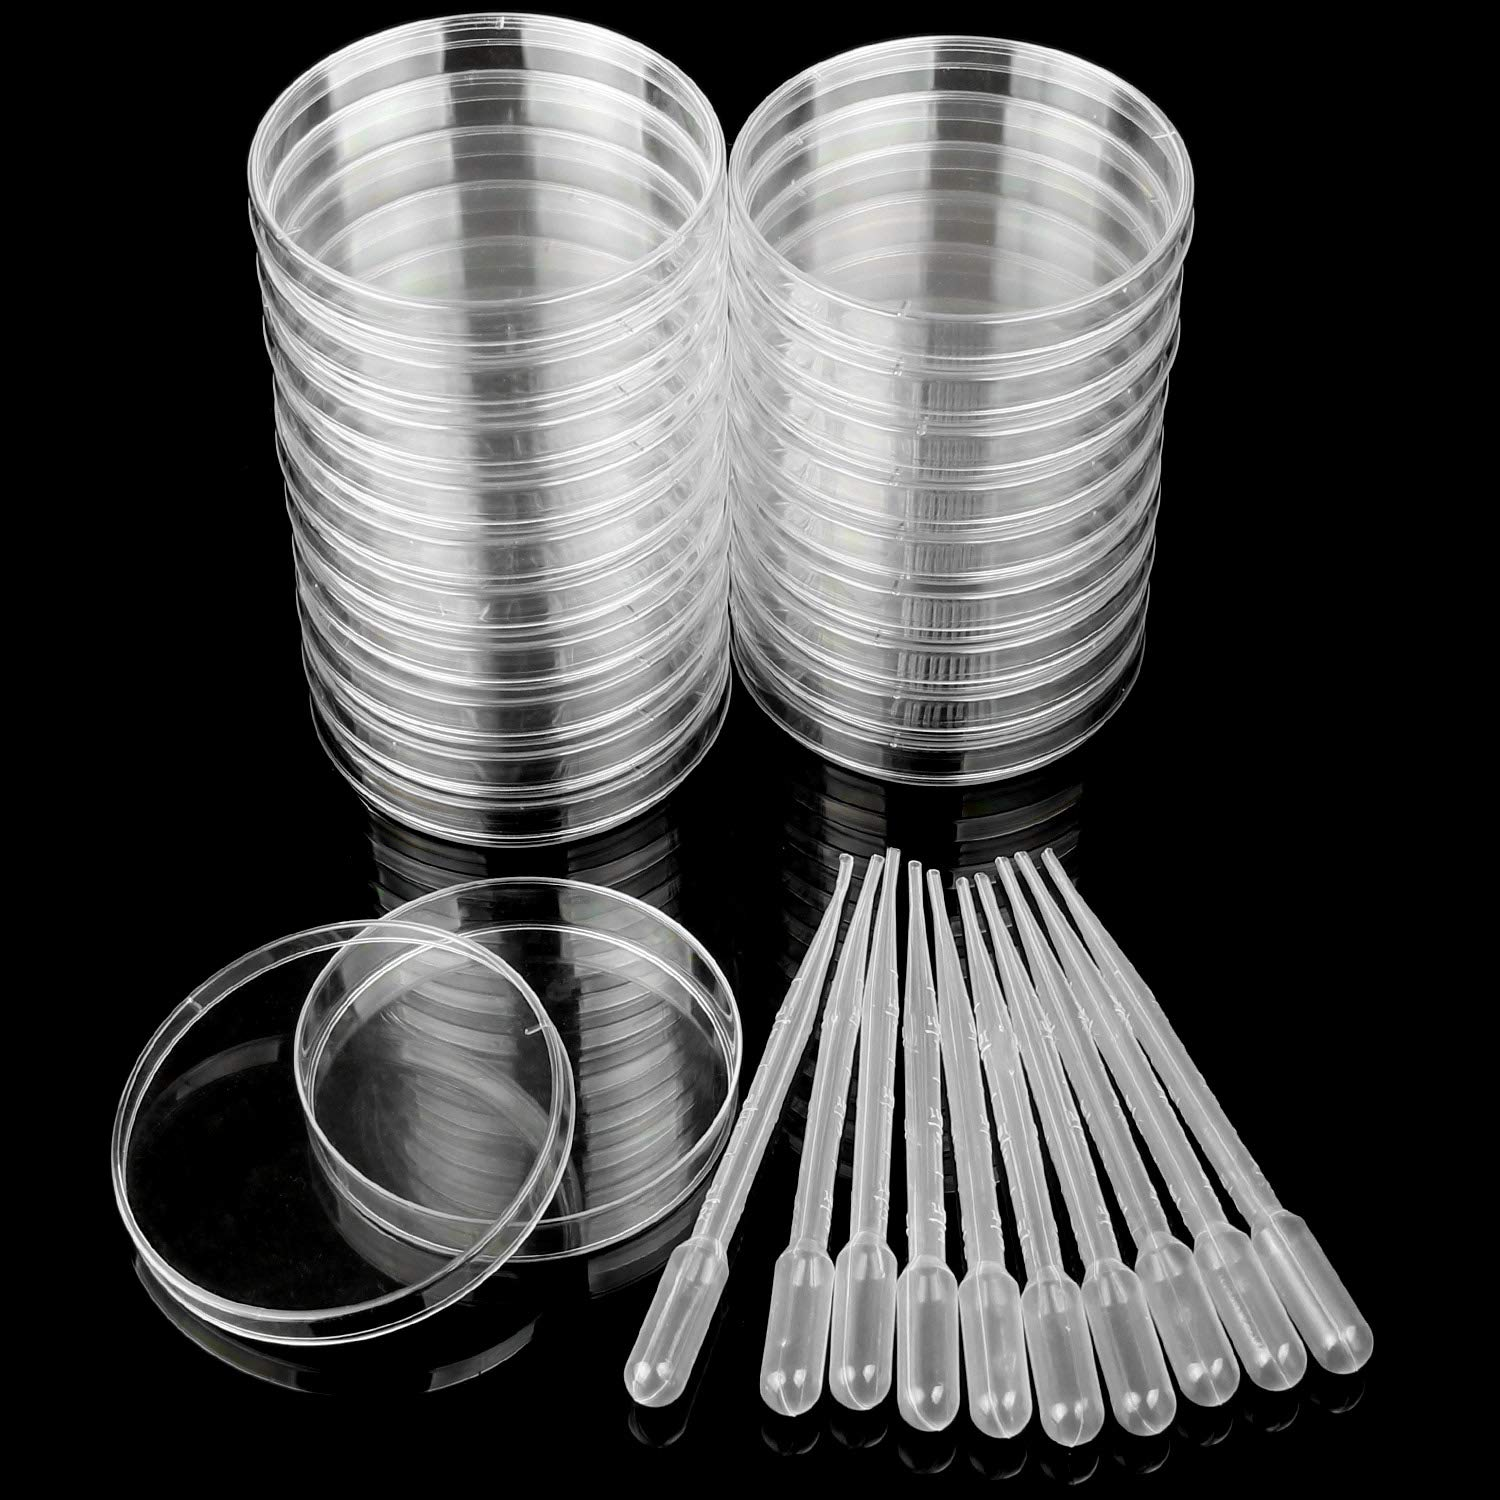 Plastic Petri Dishes 100 x 15mm 20 Pack Sterile Petri Dish Plates Set Comes with 10 Plastic Transfer Pipettes (3mm) Perfect Kit for School Science Fair Projects and Birthday Parties by STARVAST by STARVAST